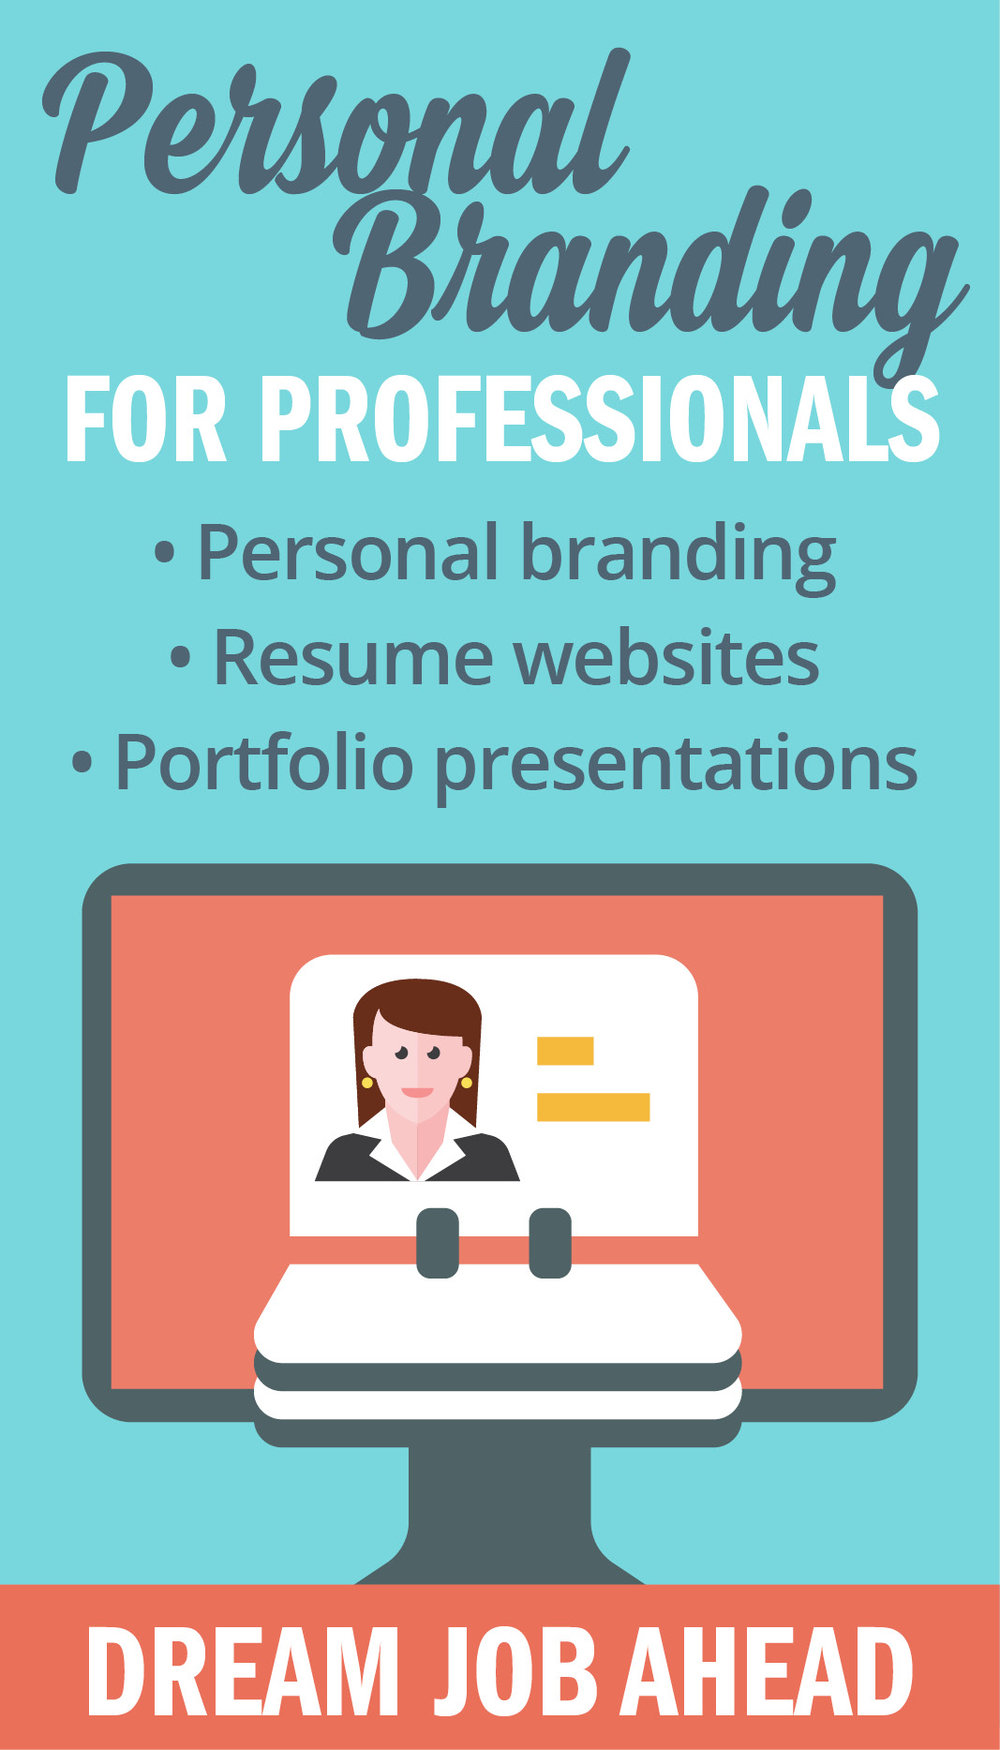 Personal branding and resume websites for career building by Bonnie Summerfeldt – graphic designer and web designer